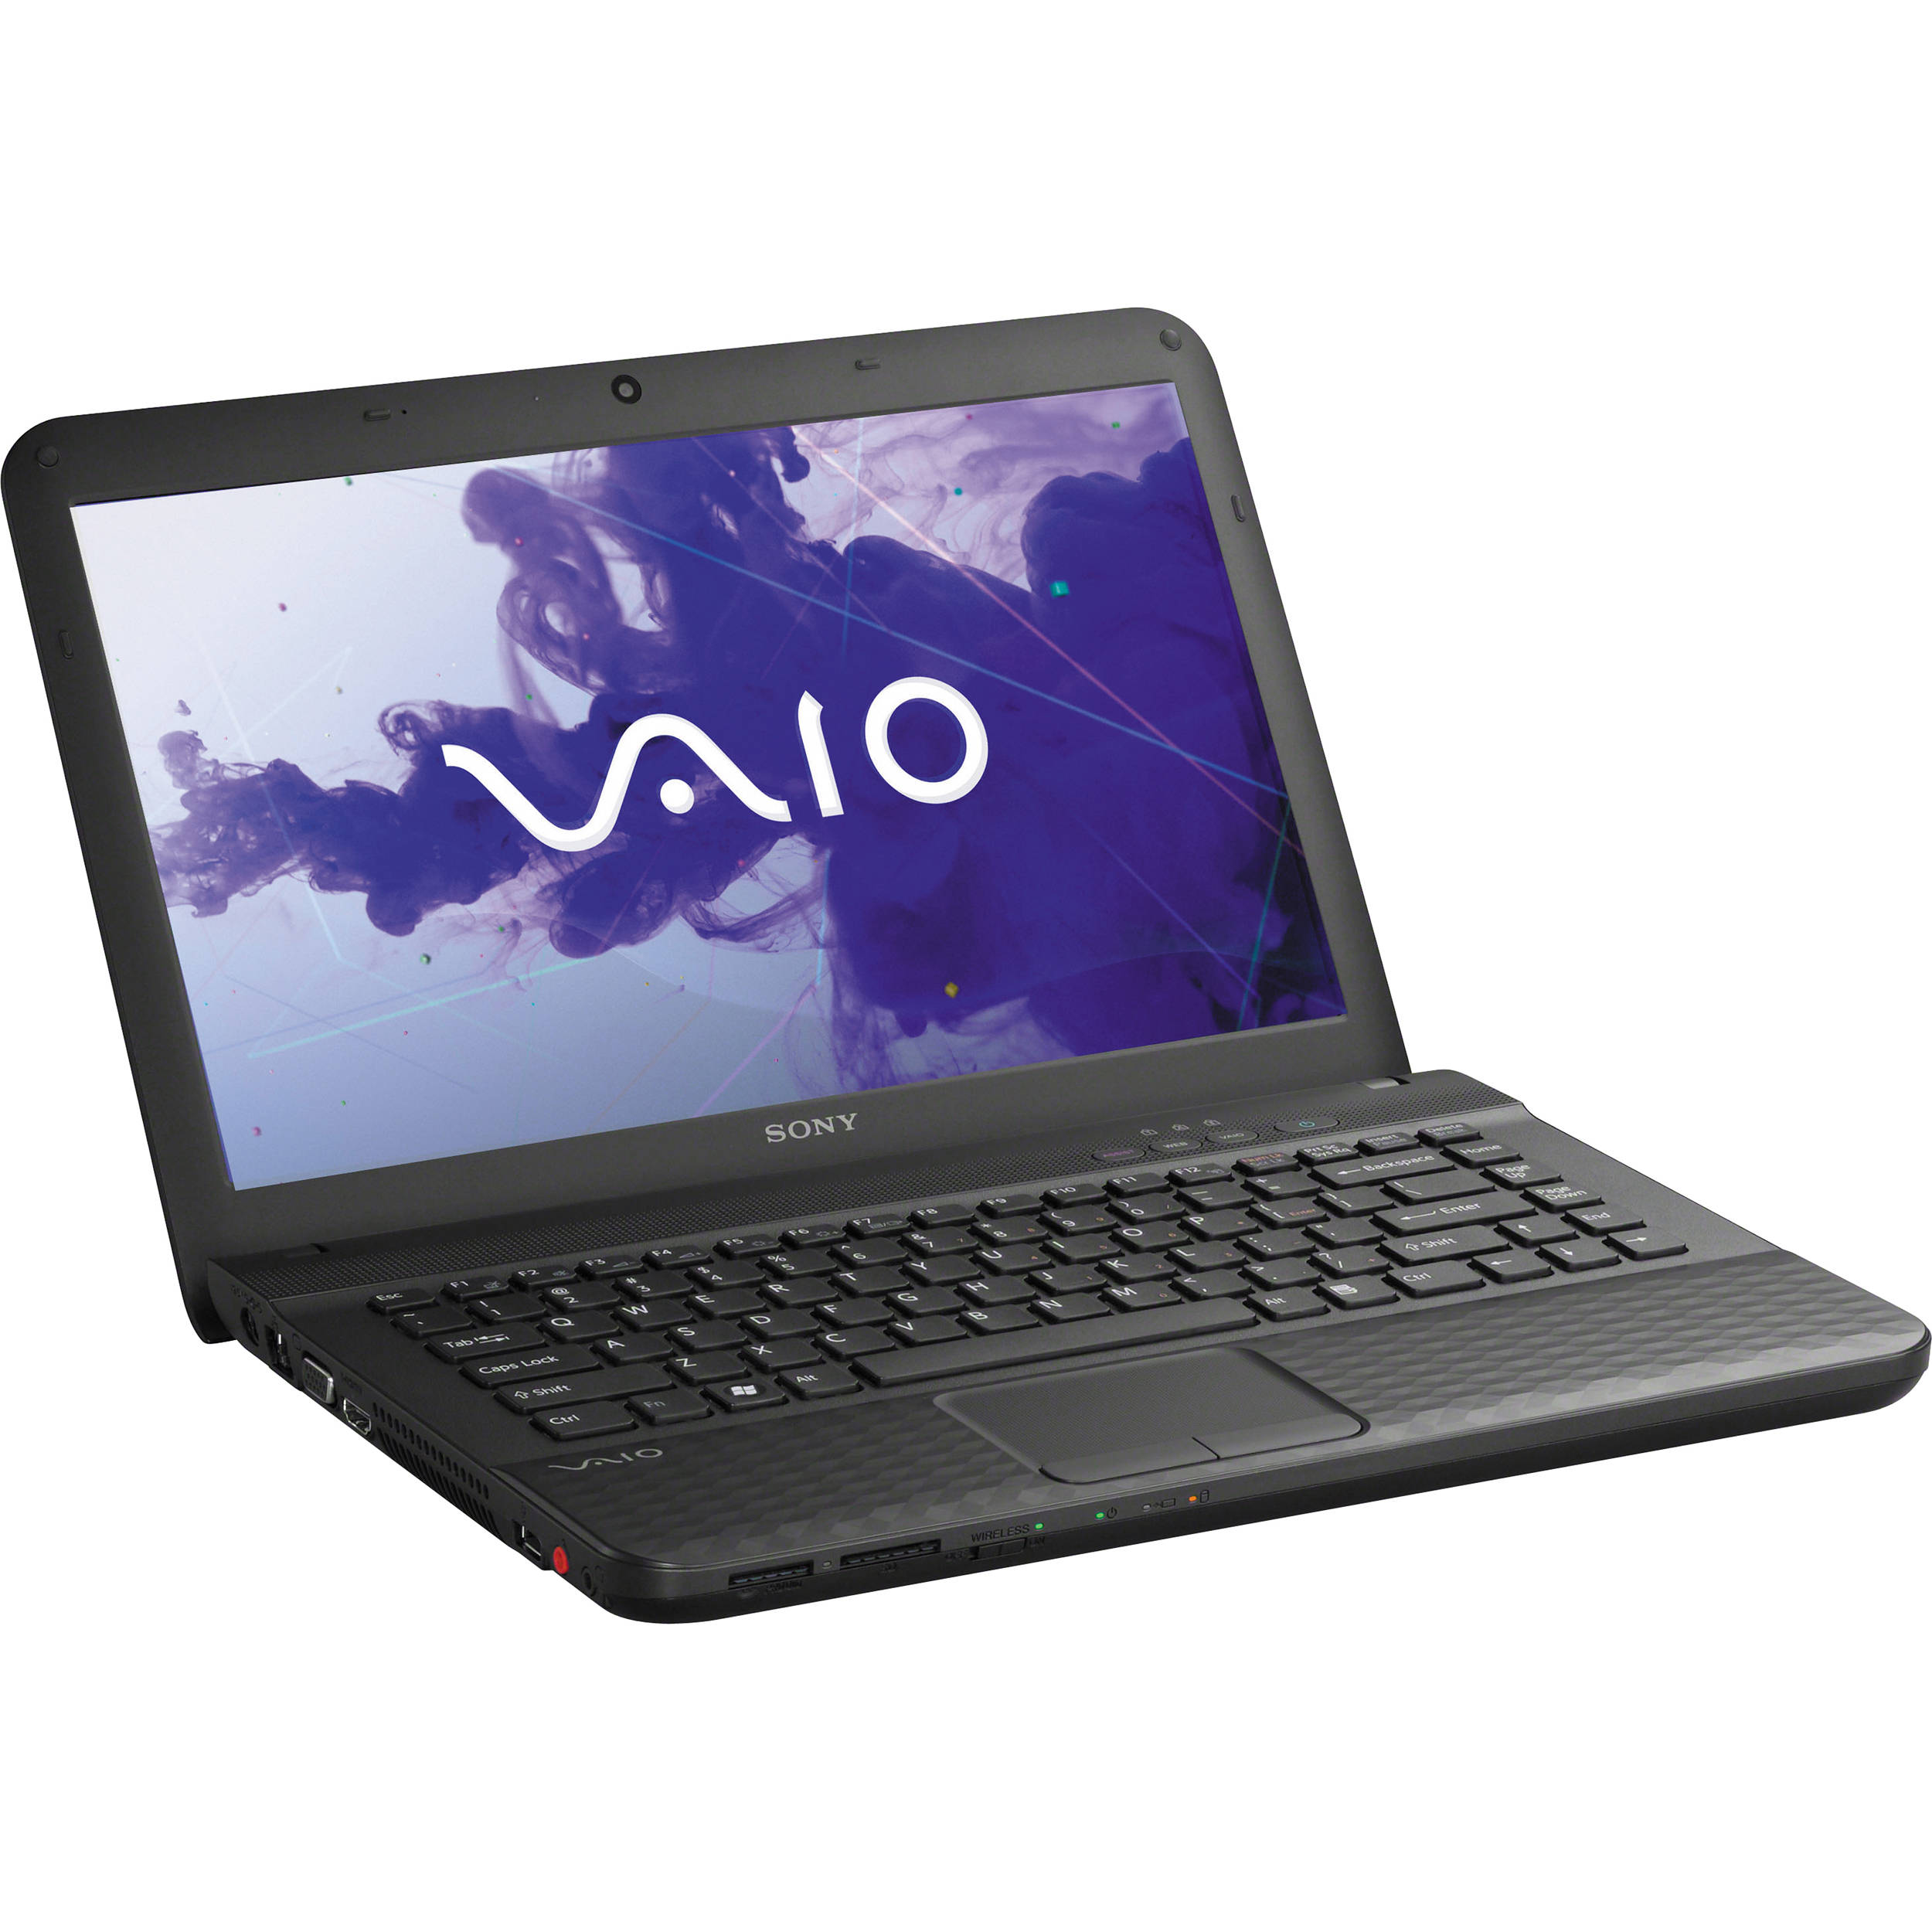 Sony Vaio VPCEG26FX/B Easy Connect XP